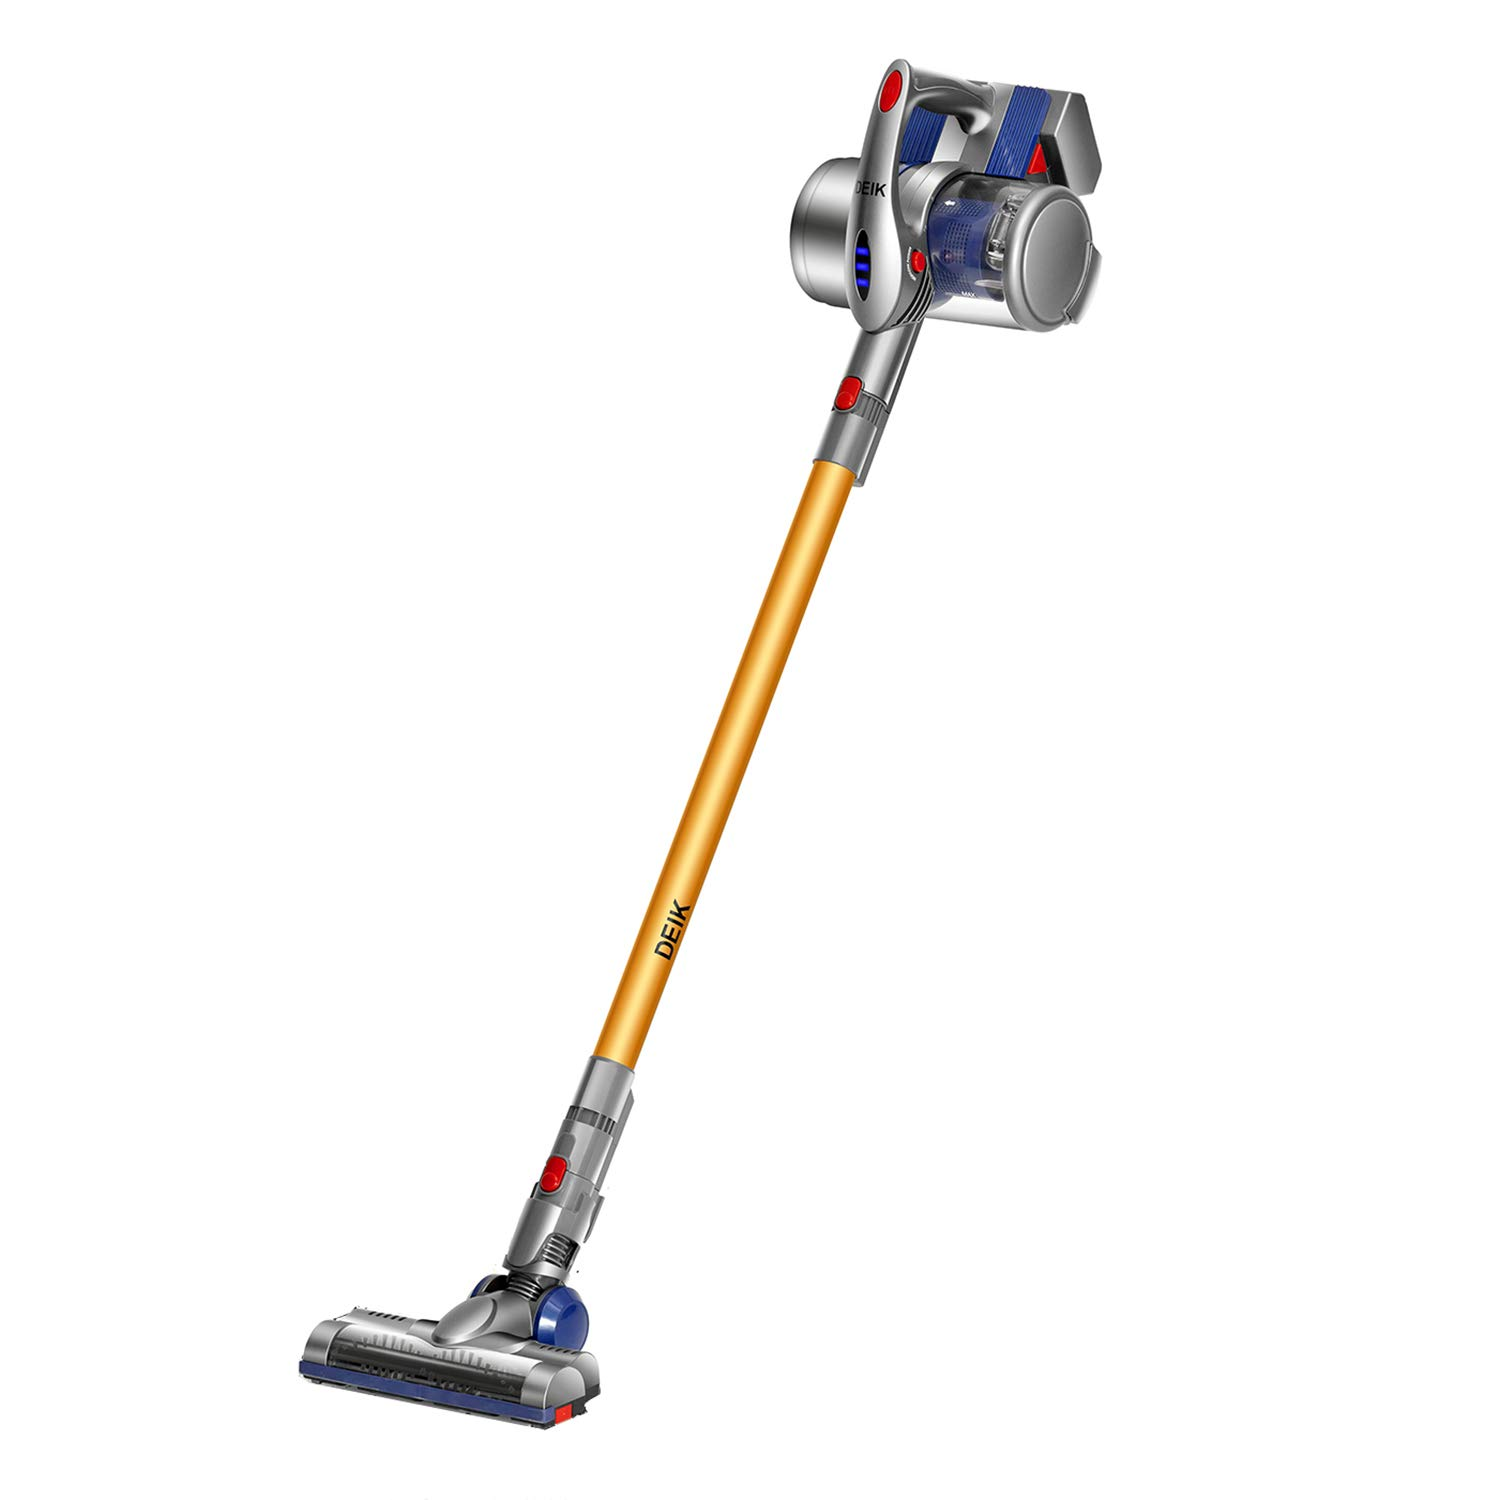 Deik 2 in 1 Cordless Vacuum with Wall-Mount